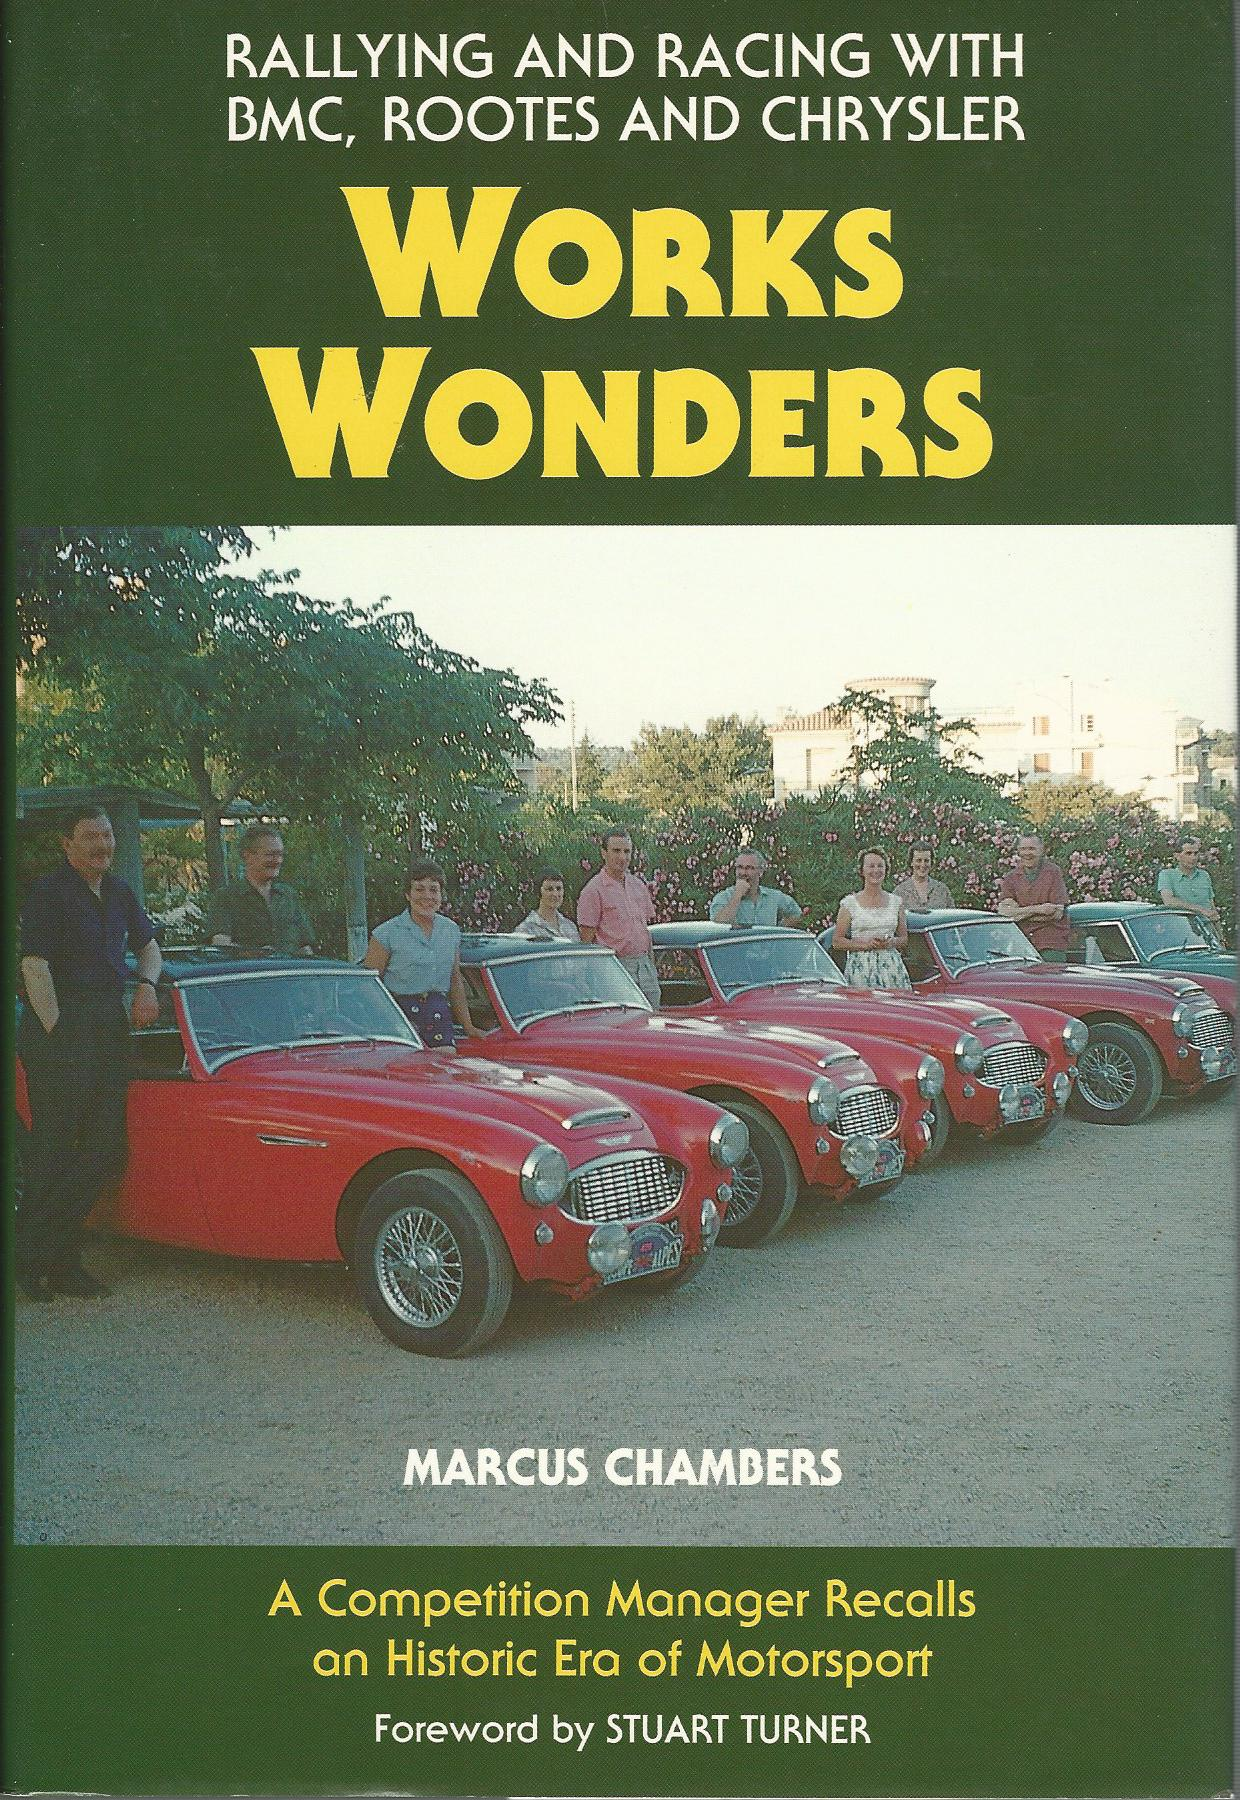 Image for Works Wonders Rallying and Racing With BMC, Rootes and Chrysler (Motor sport)